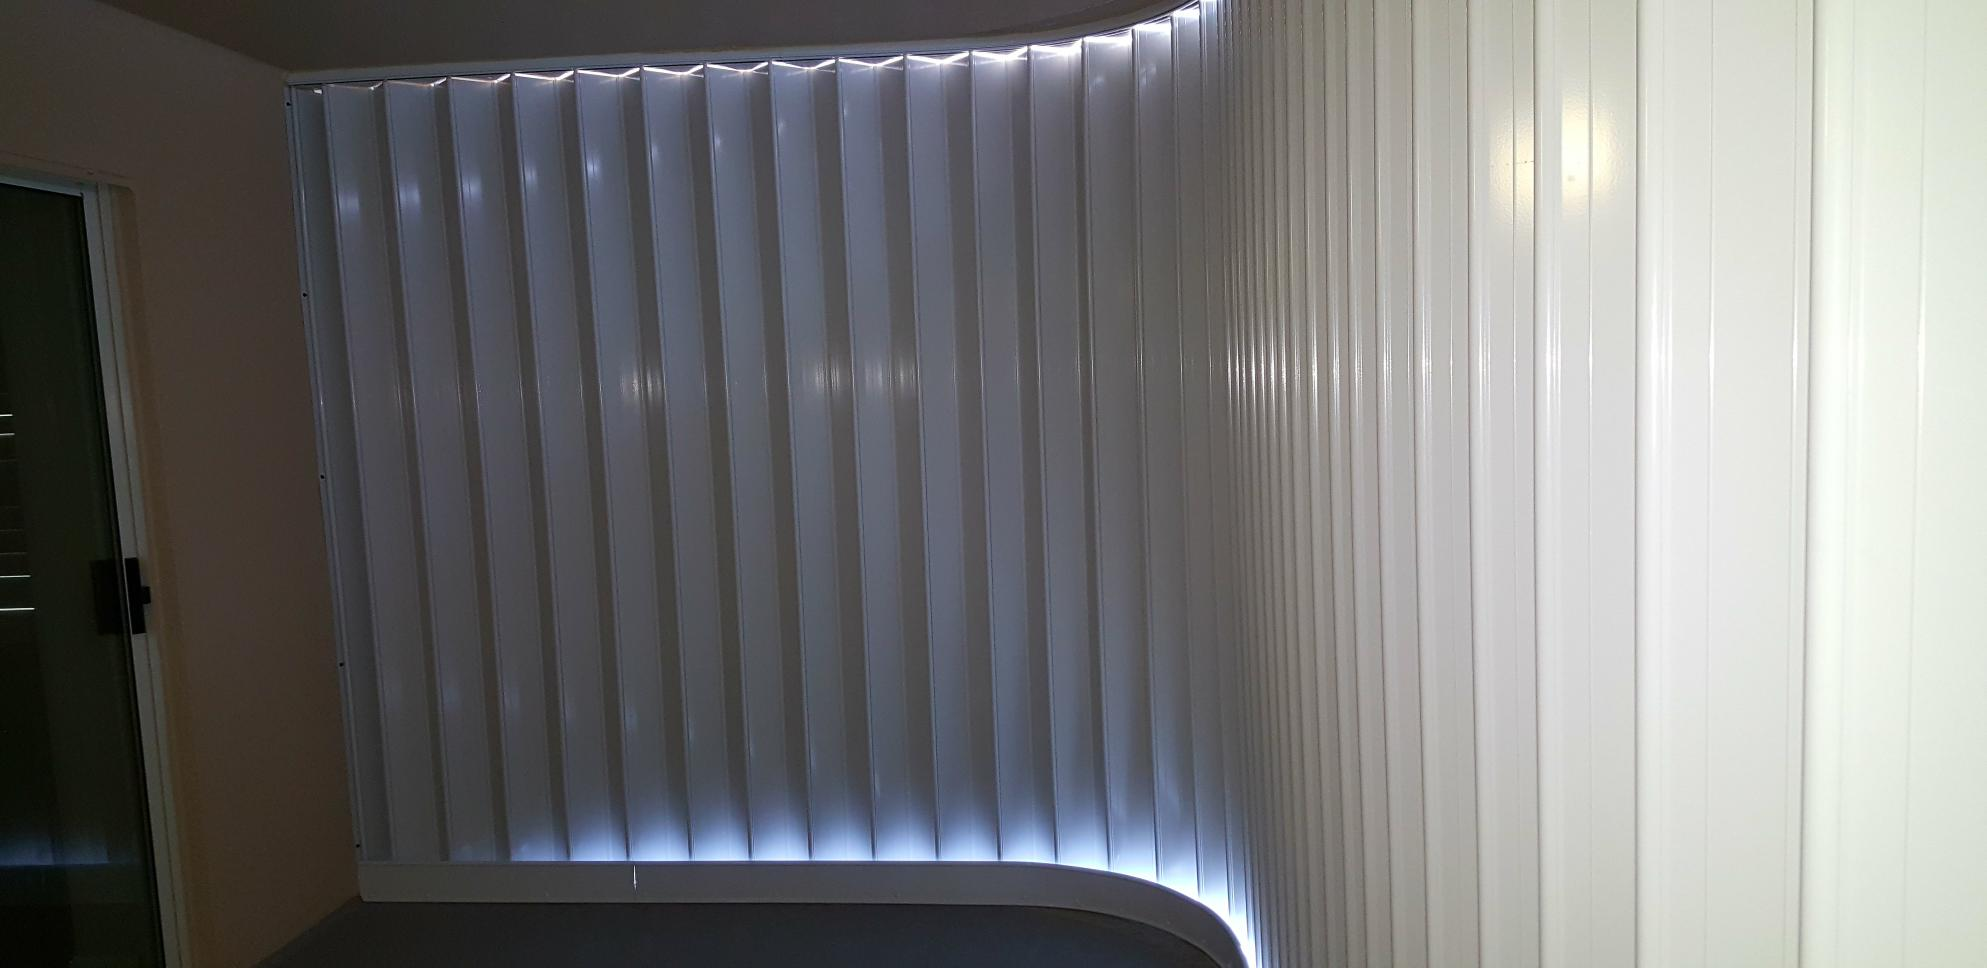 Accordion Shutters Enclose A Large Balcony Or Opening With